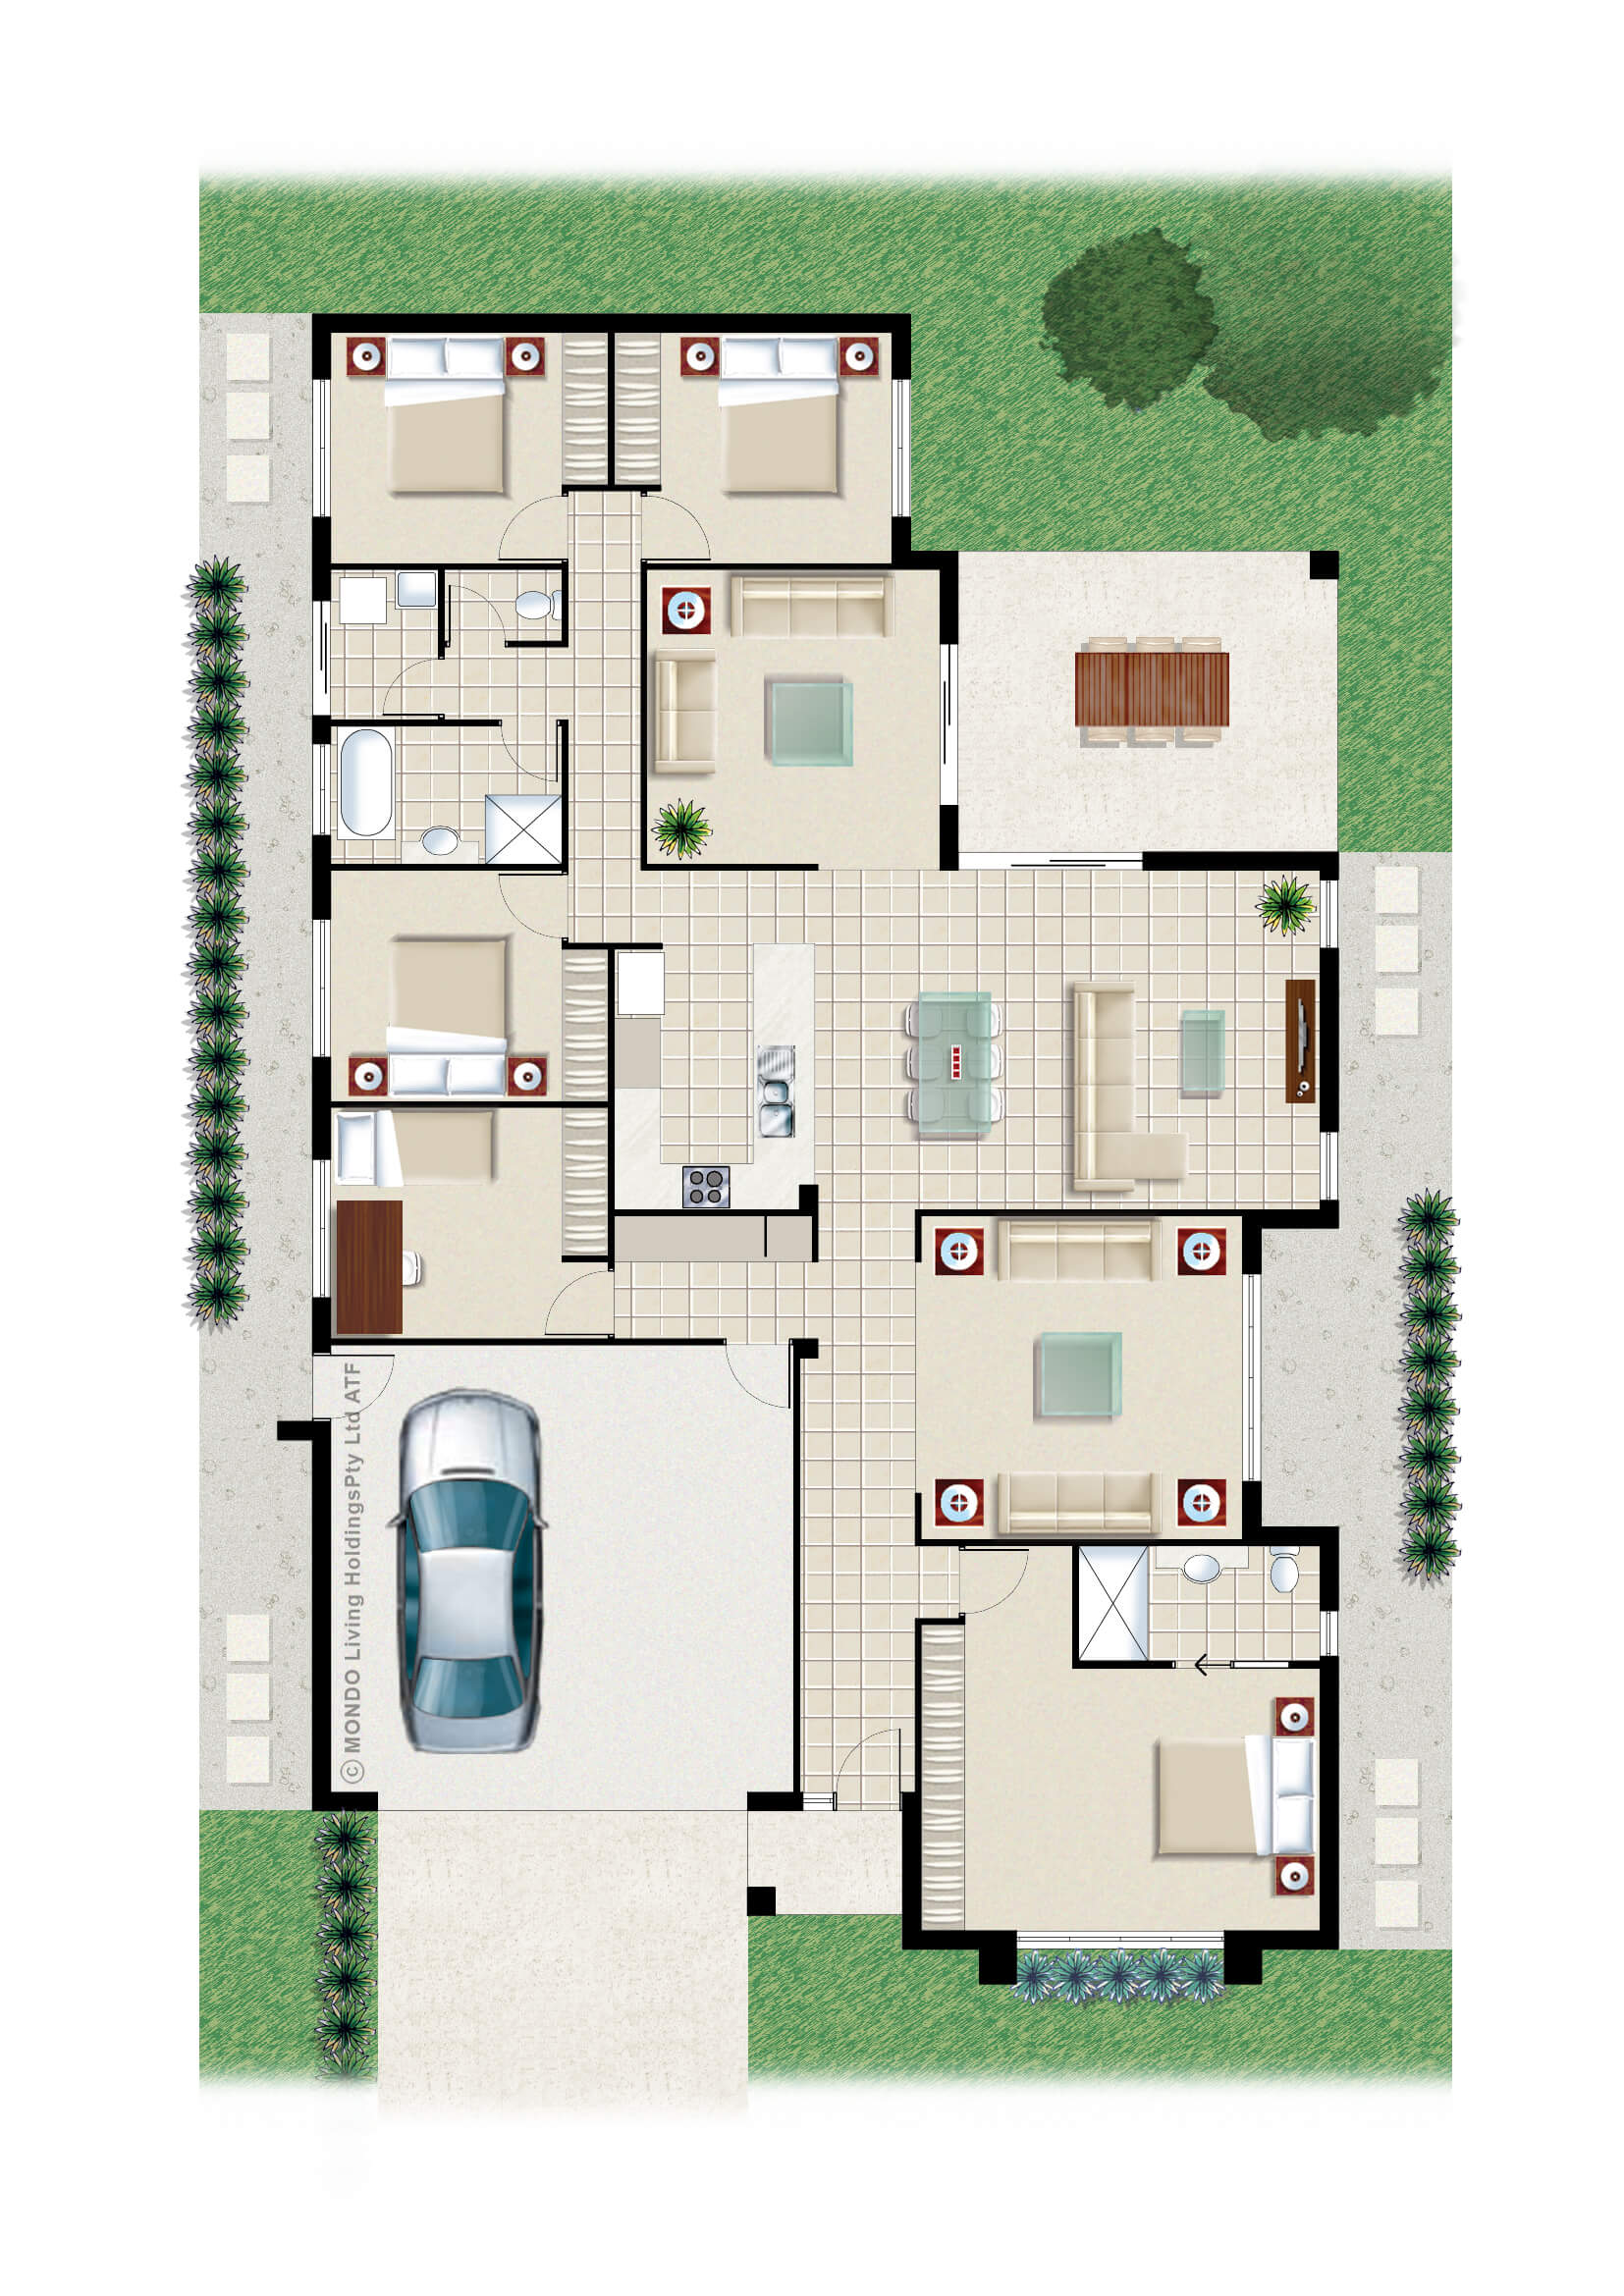 Auburn 501 lot 101 fergus builders for 101 richmond floor plans